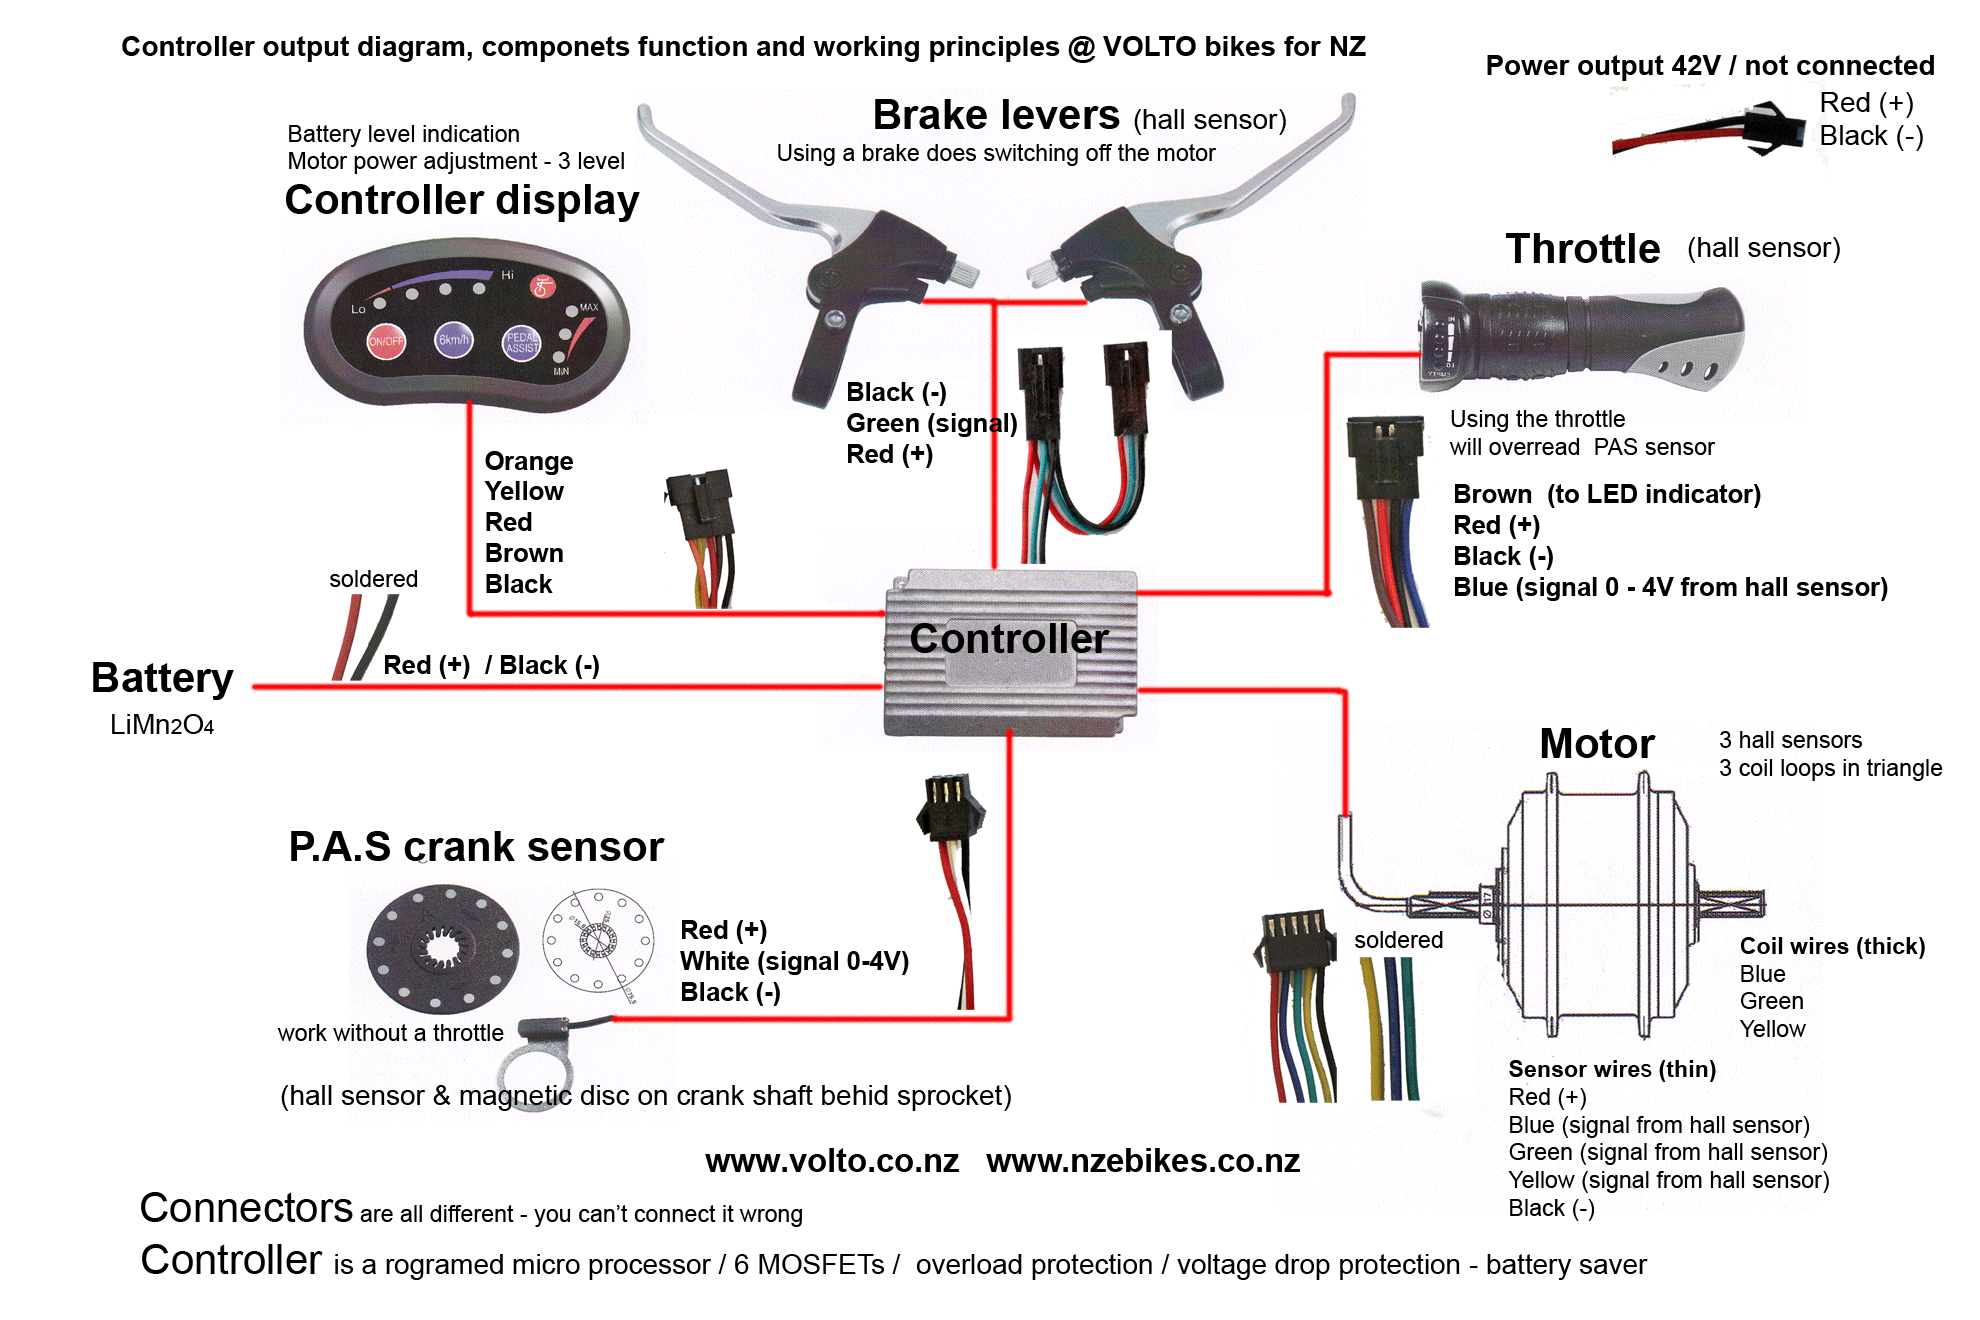 E Bike Controller Wiring Diagram Pdf from volto.co.nz